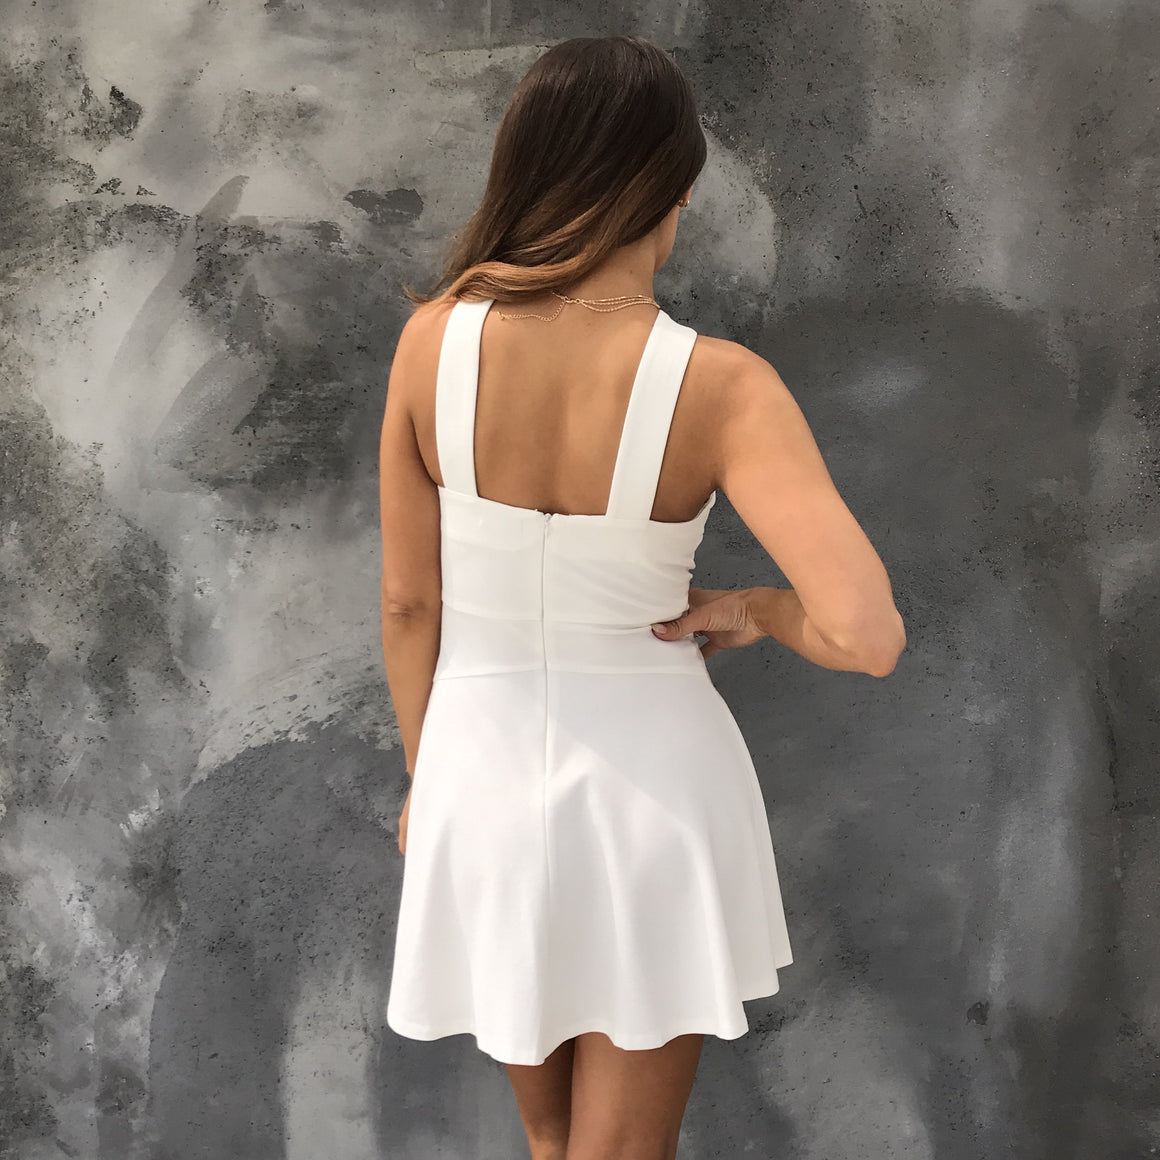 Purity Skater Dress in White - Dainty Hooligan